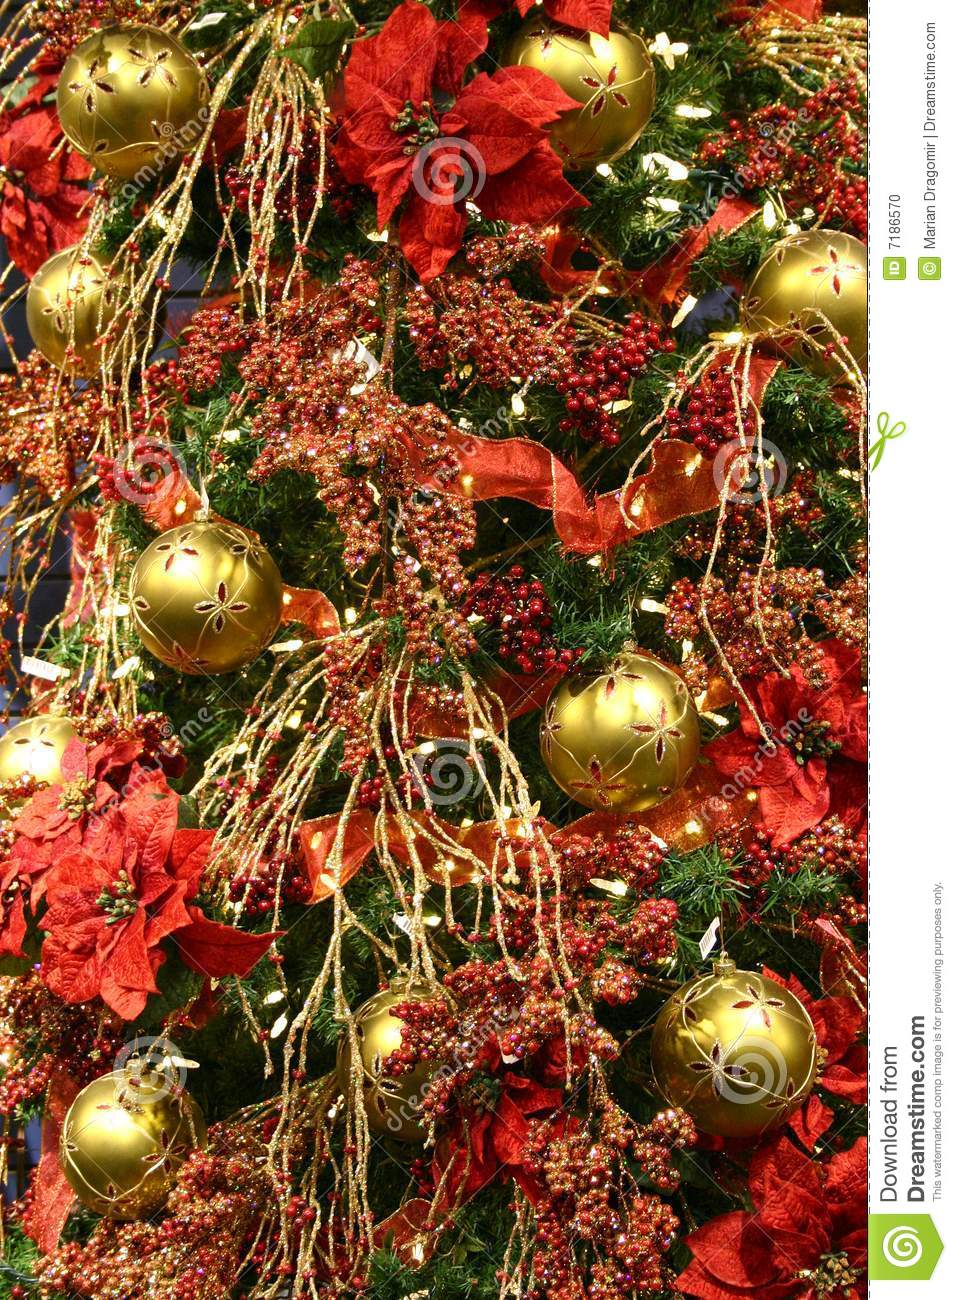 decoracao arvore de natal vermelha:Red Christmas Tree Decoration